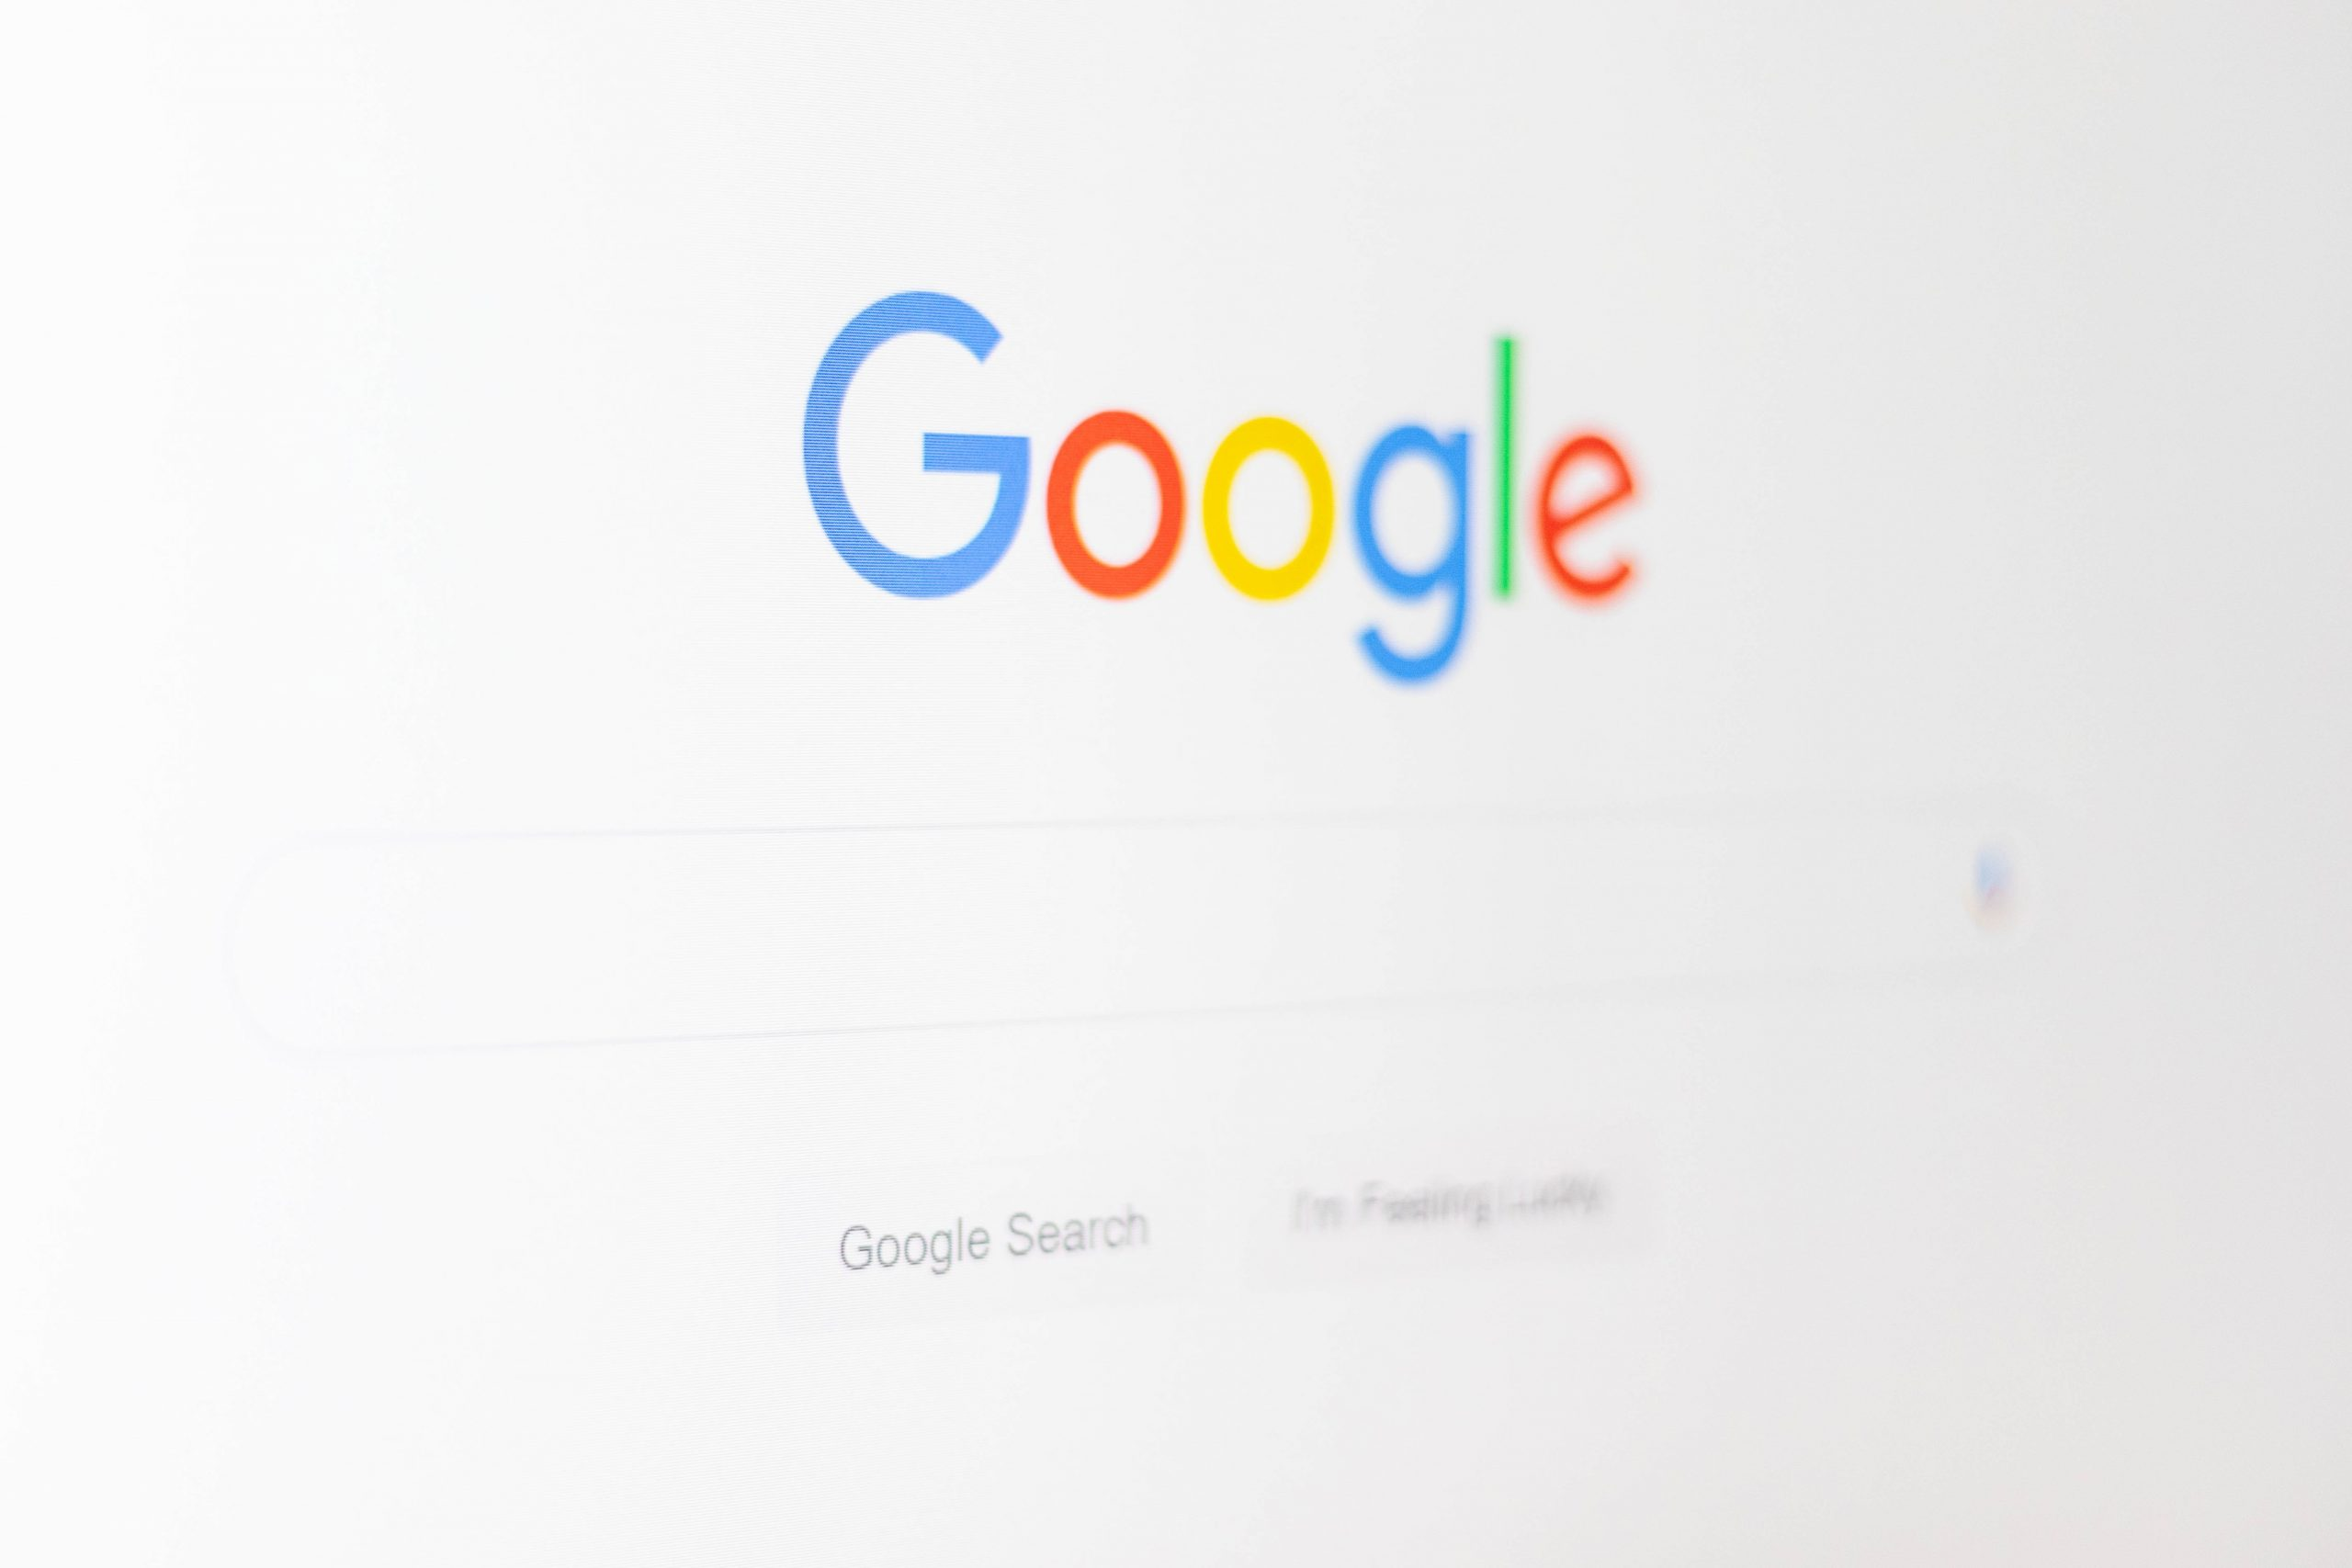 The Google Search bar